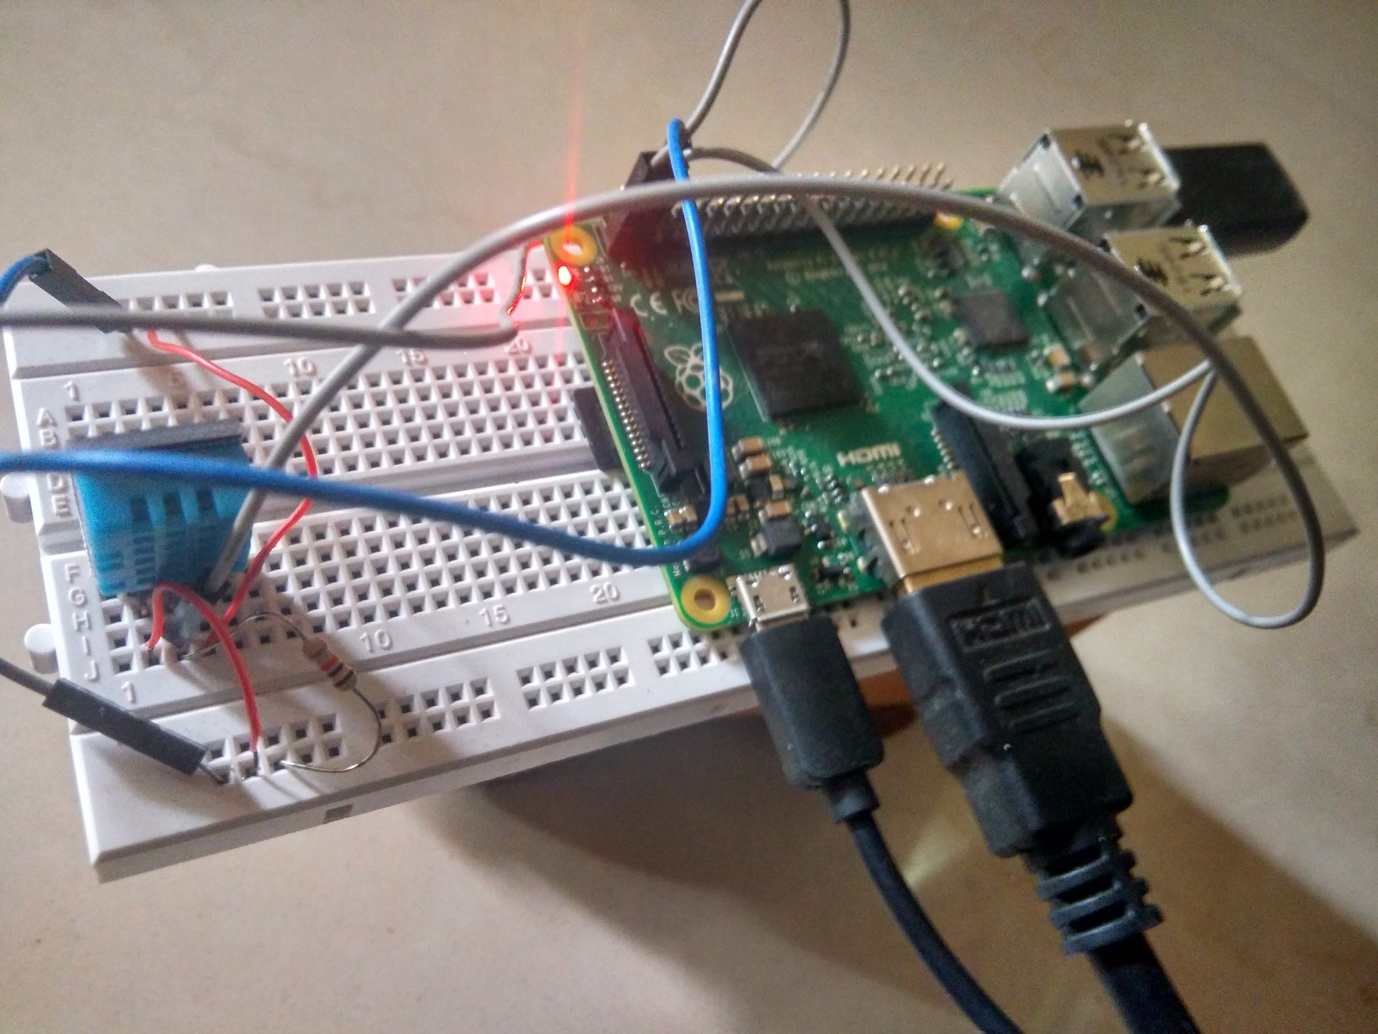 Internet of Things – A simple demonstration – how build an IoT